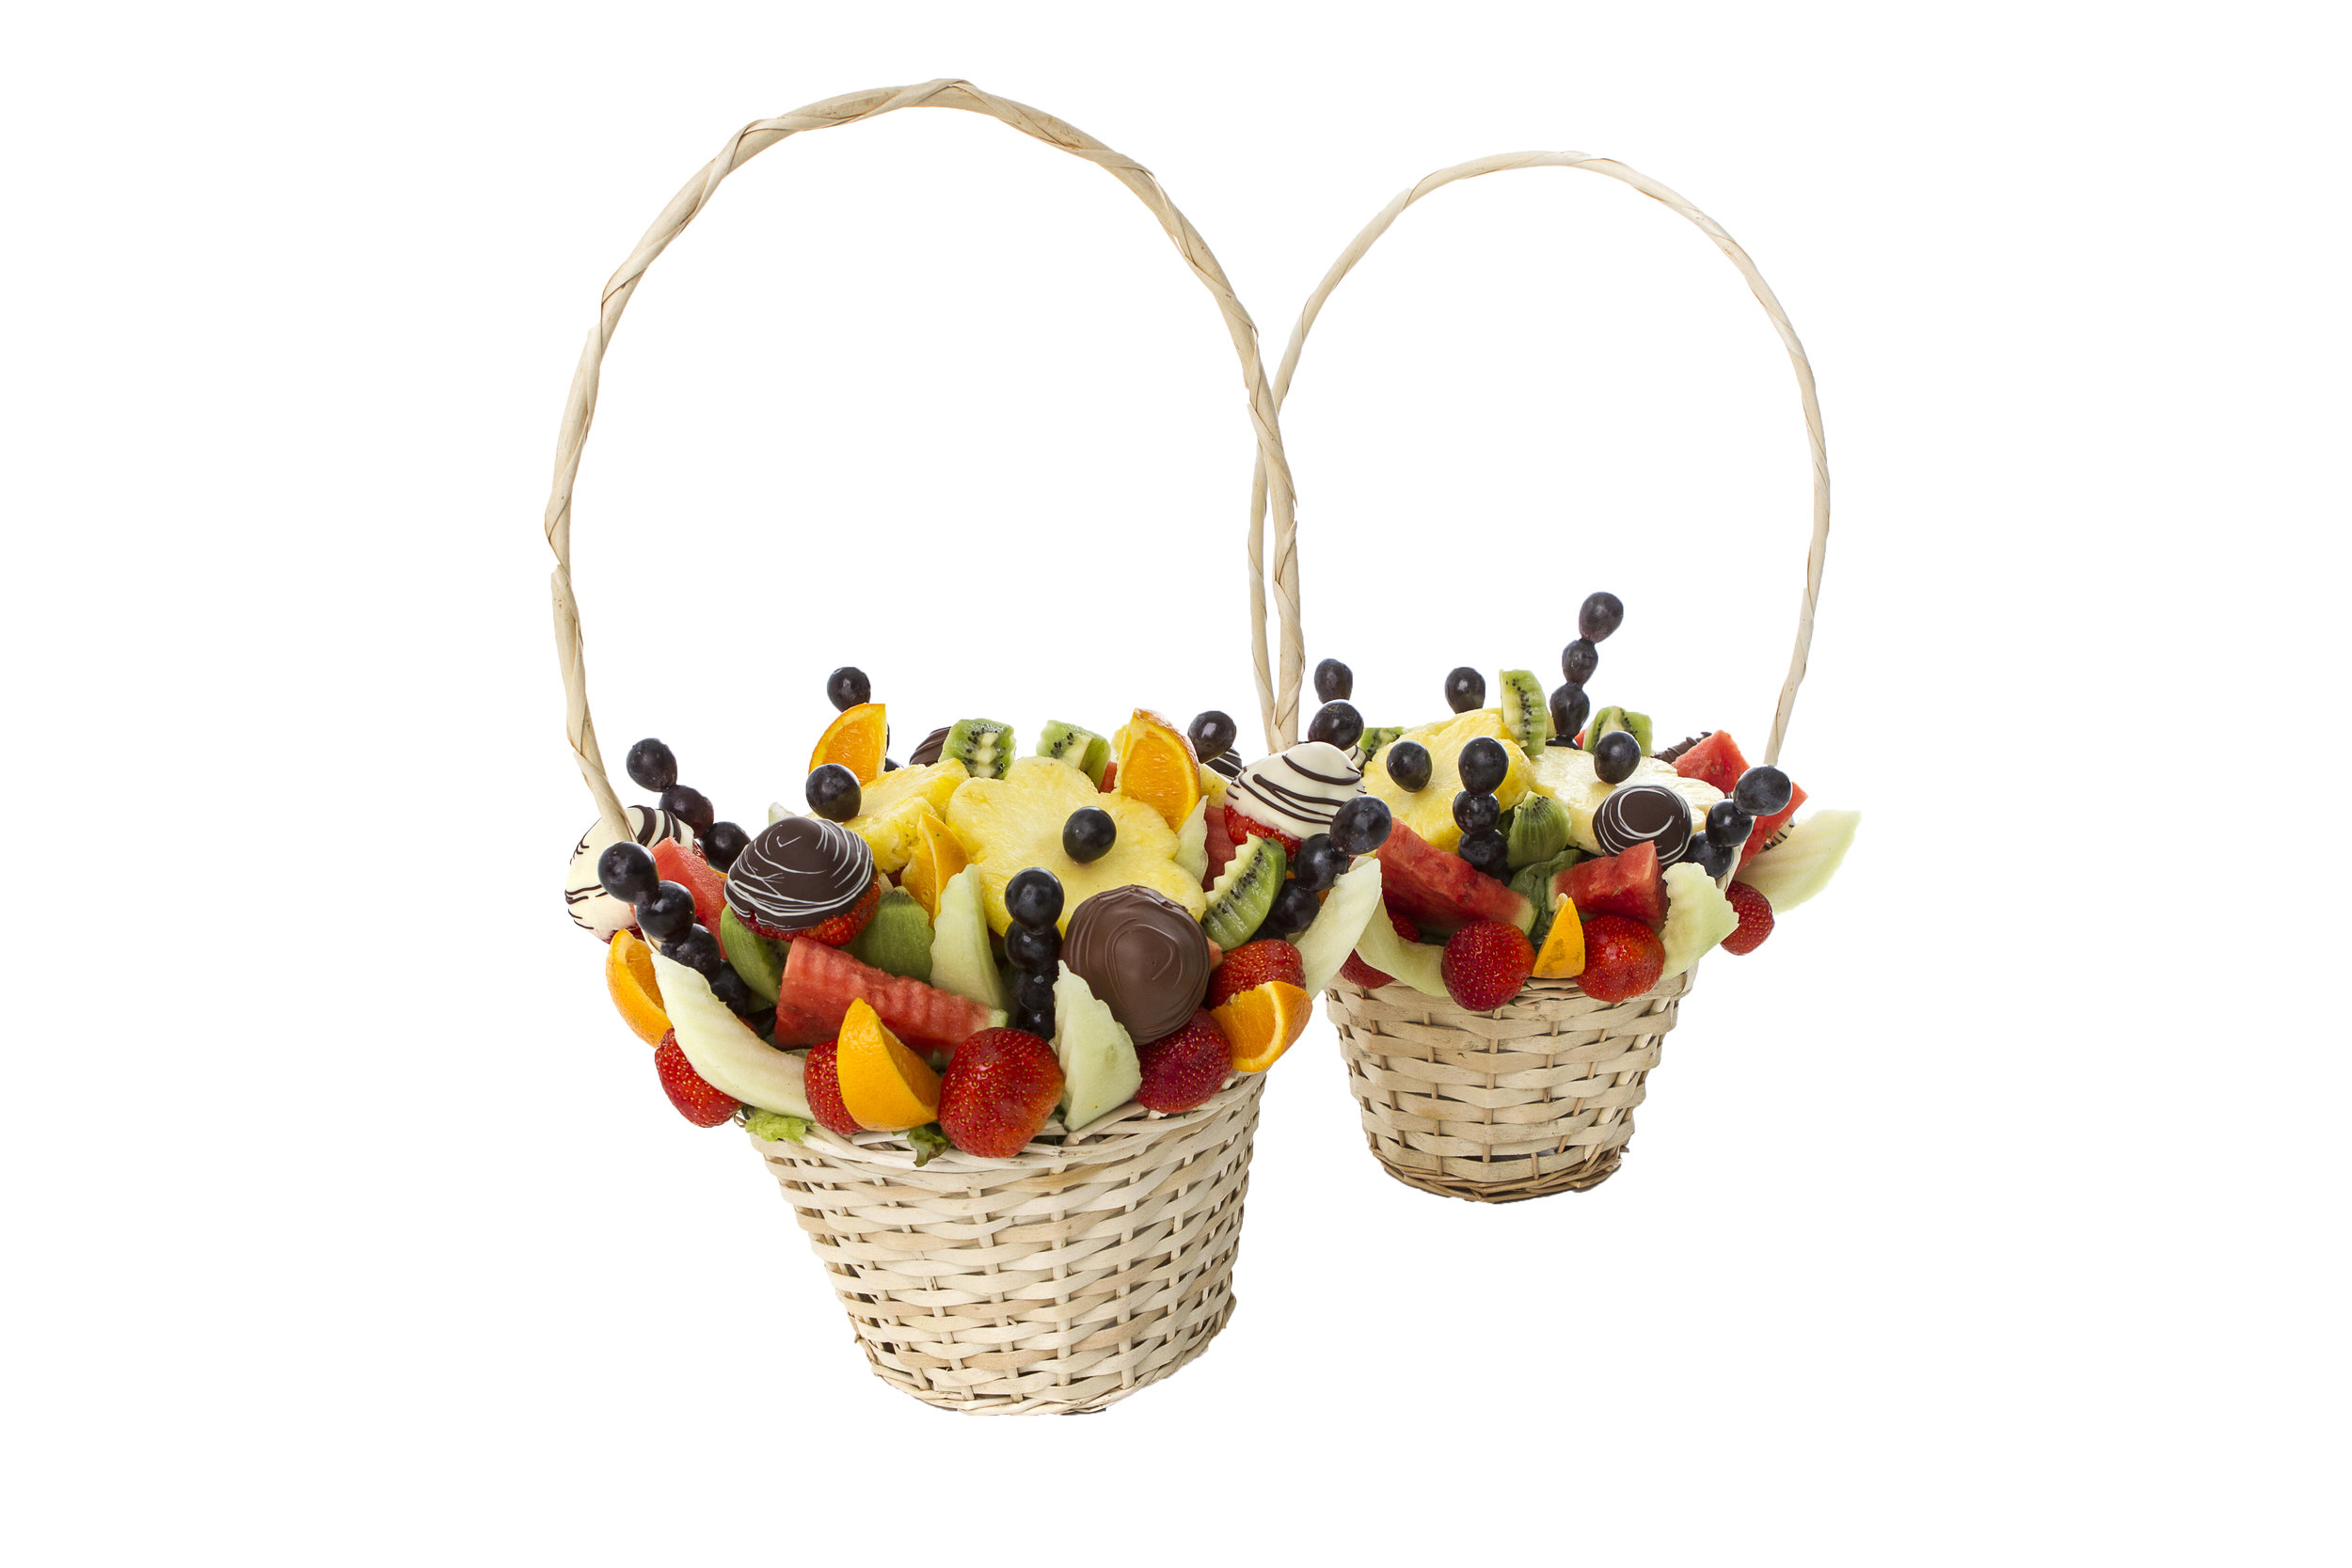 Fruity Bouquets edible bouquets and gifts.jpg